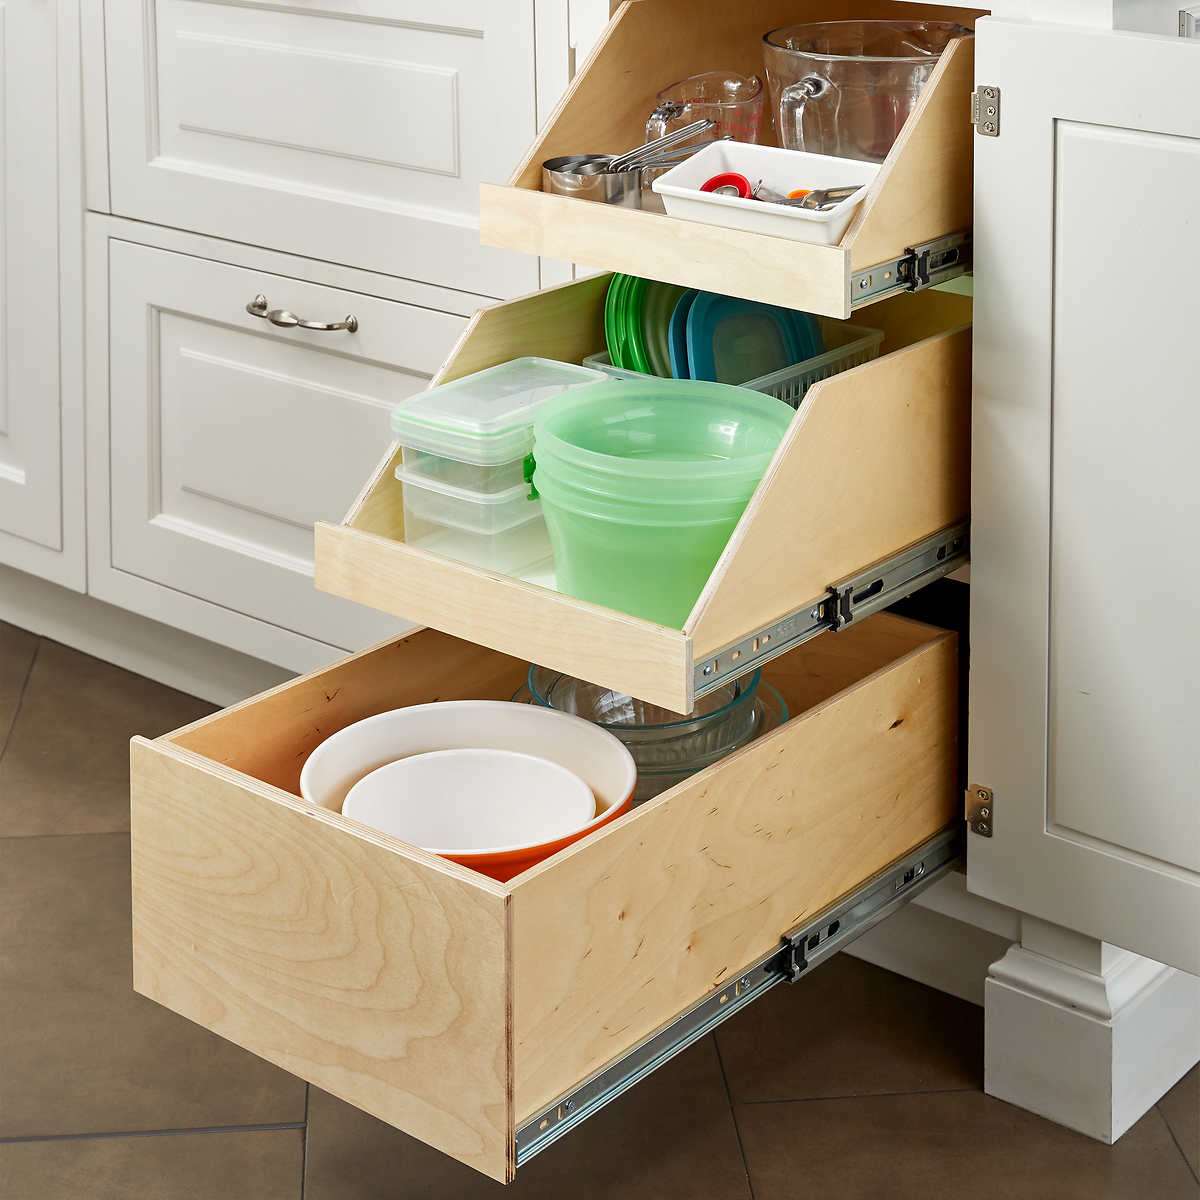 Made-to-fit Specialty Slide-out Shelves For Existing Cabinets By  Slide-a-shelf